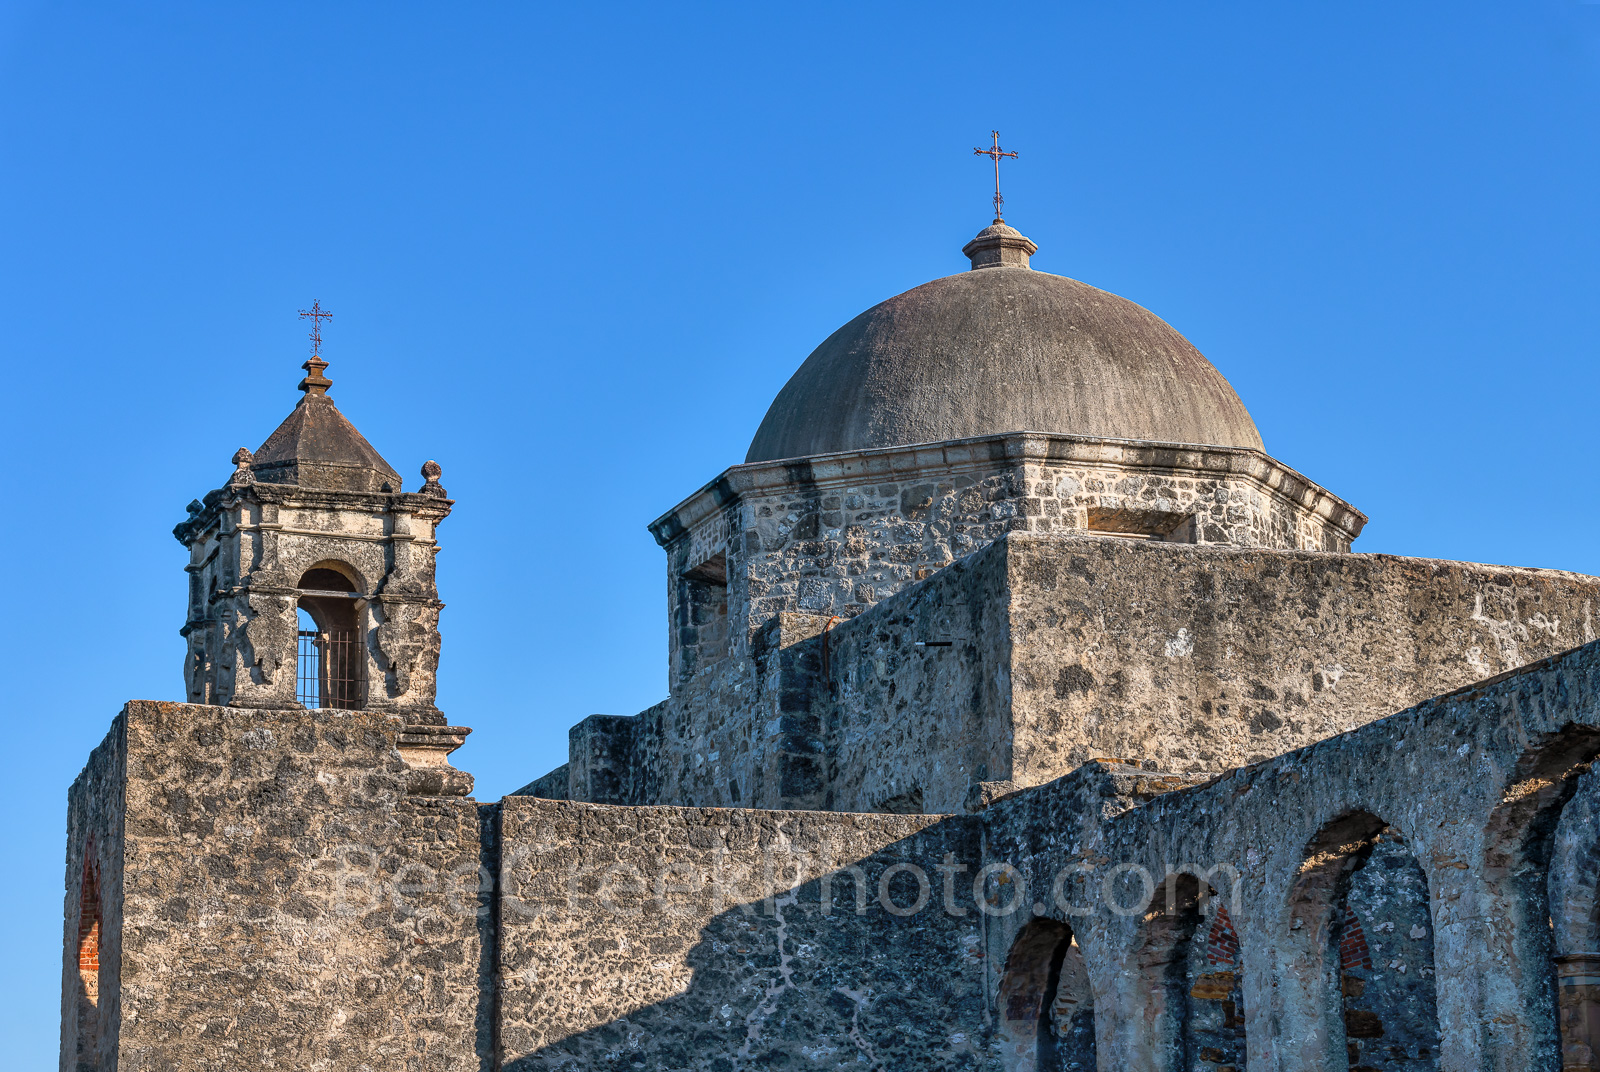 MIssion San Jose, dome, steeple, church, mission, architecture, San Antonio Missions National Historical Park,, photo